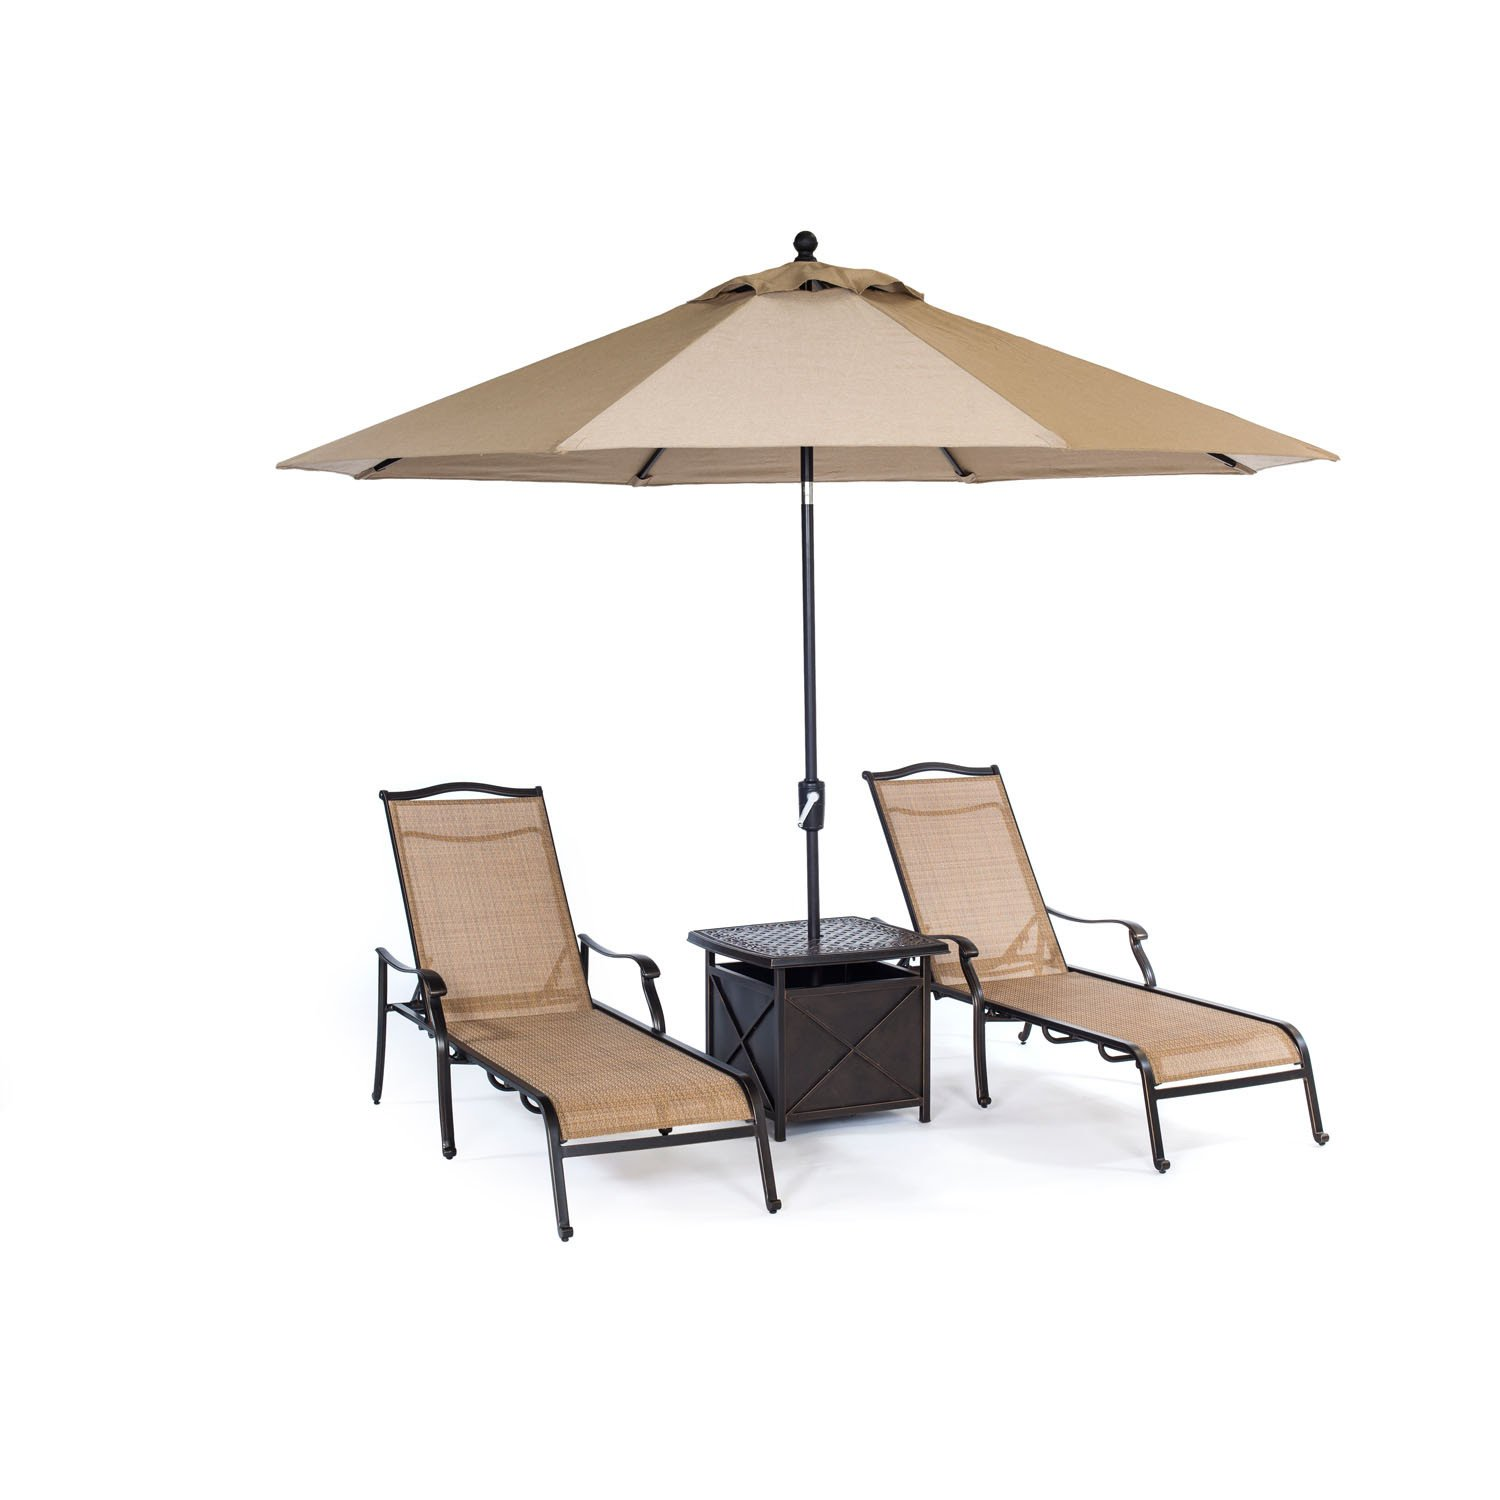 sling chaise chair set chairs umbrella side outdoor table aluminum tan metal threshold bar cover inch wide tablecloths teal bedroom farm style tulip marble simple console couch